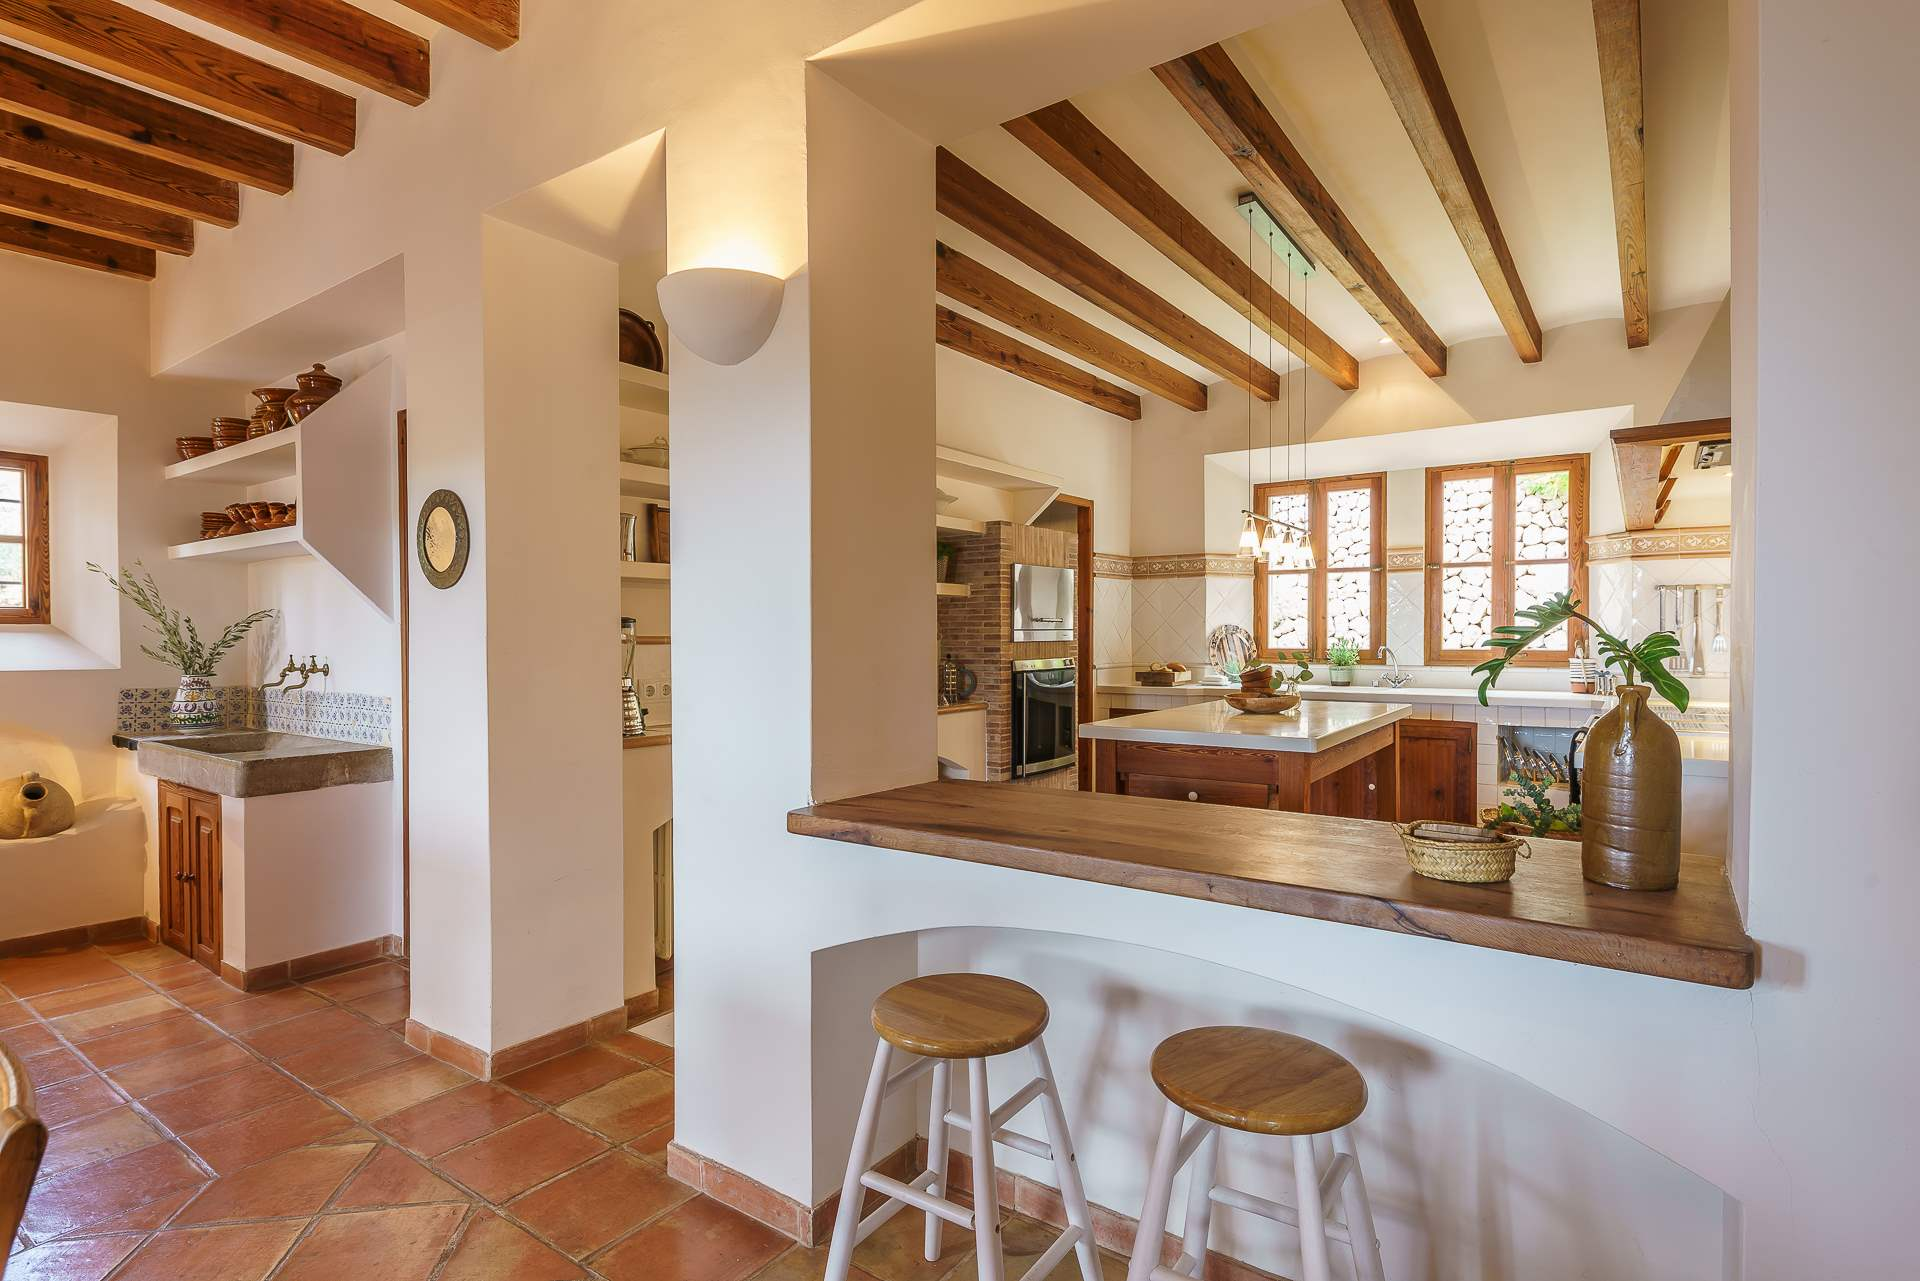 Sa Tanca, 3 Bedroom Rental, 3 bedroom villa in Soller & Deia, Majorca Photo #10